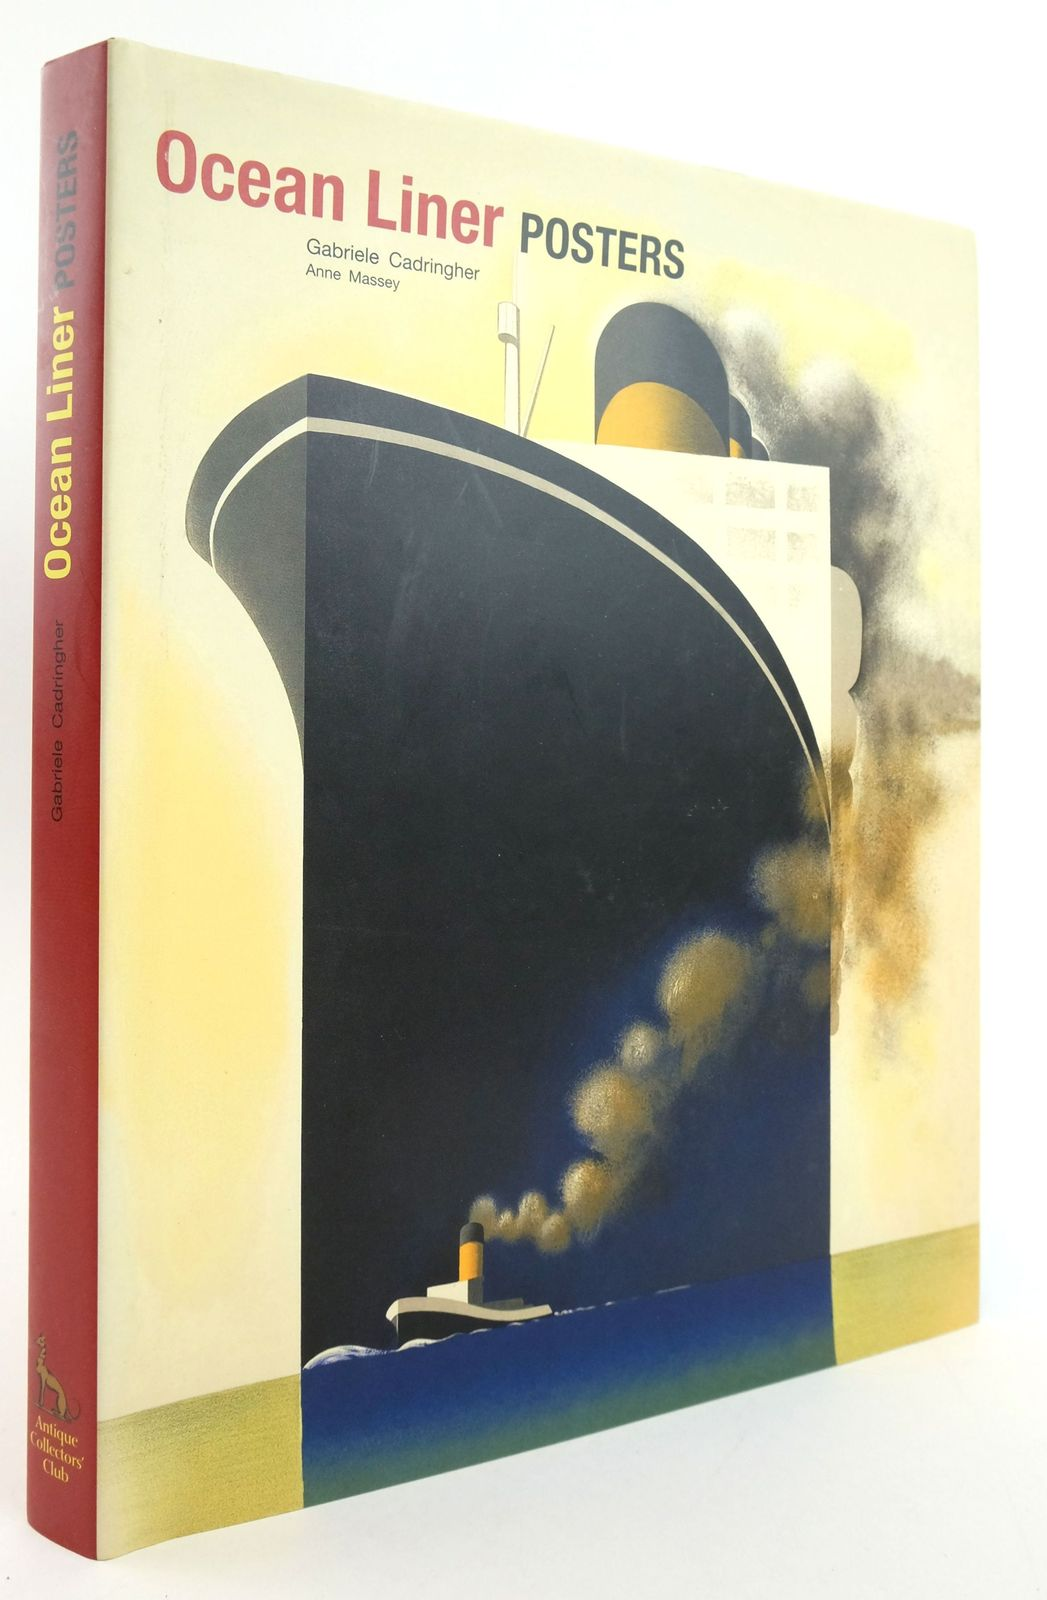 Photo of OCEAN LINER POSTERS written by Cadringher, Gabriele Massey, Anne published by Antique Collectors' Club (STOCK CODE: 1820050)  for sale by Stella & Rose's Books